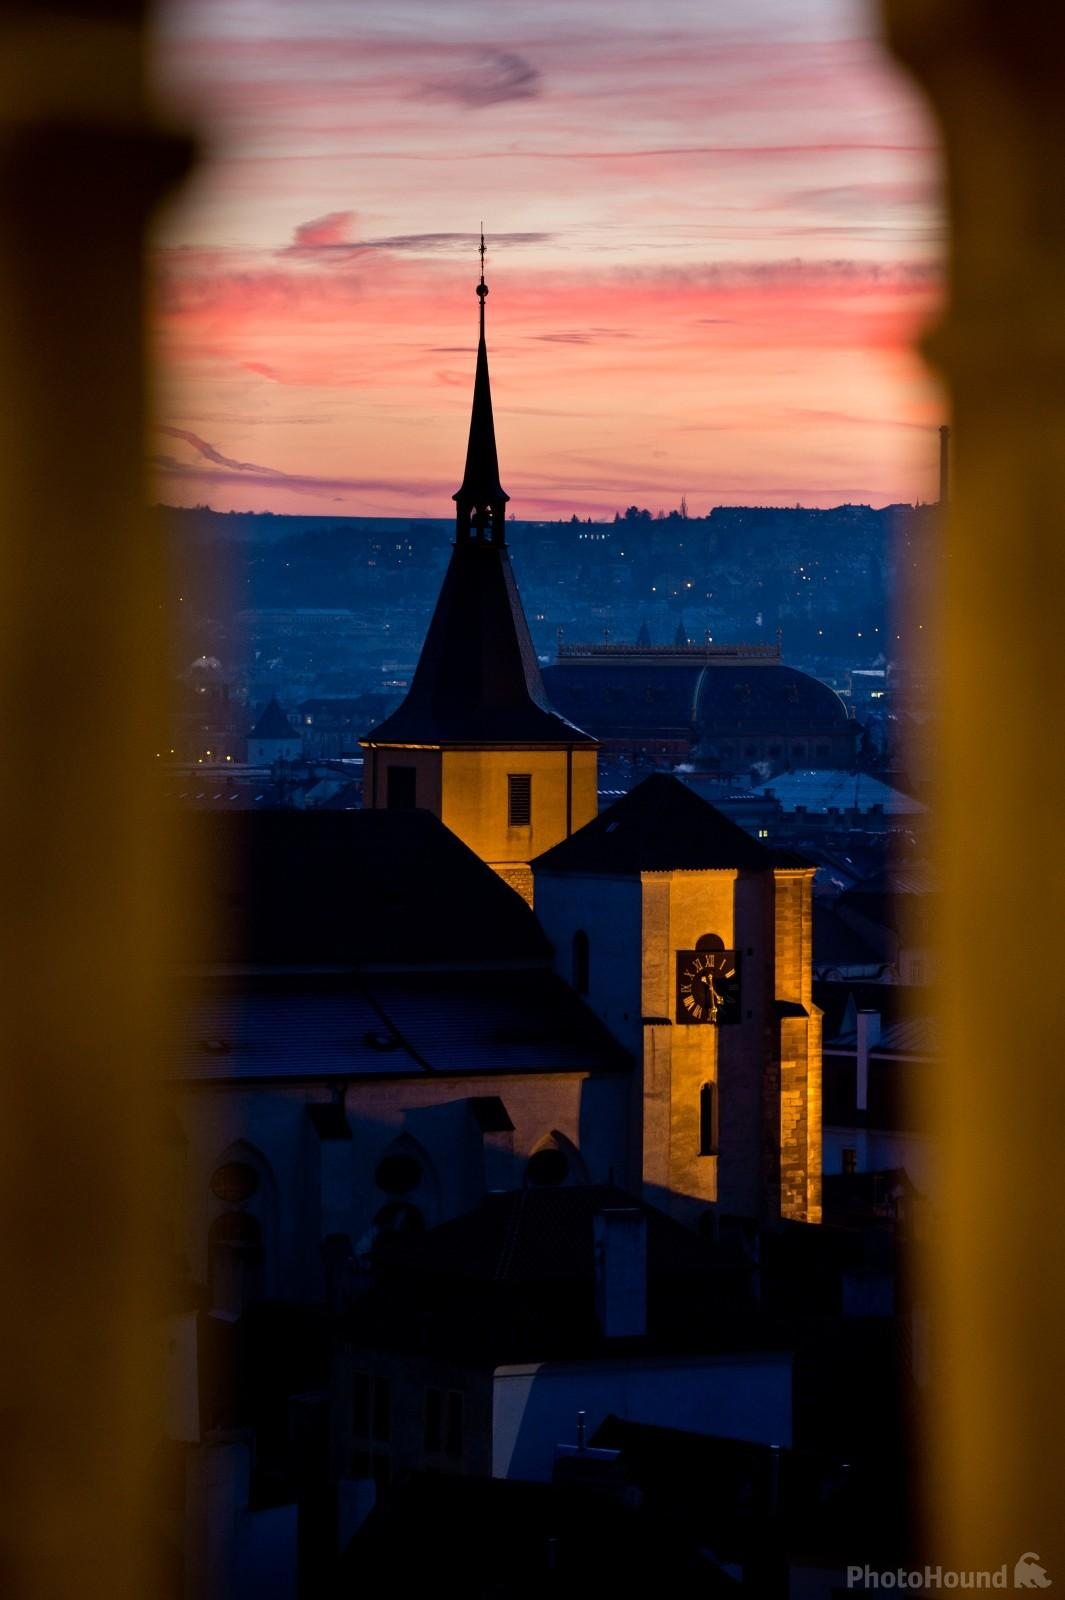 View through the window of Old Town Hall Tower after sunset